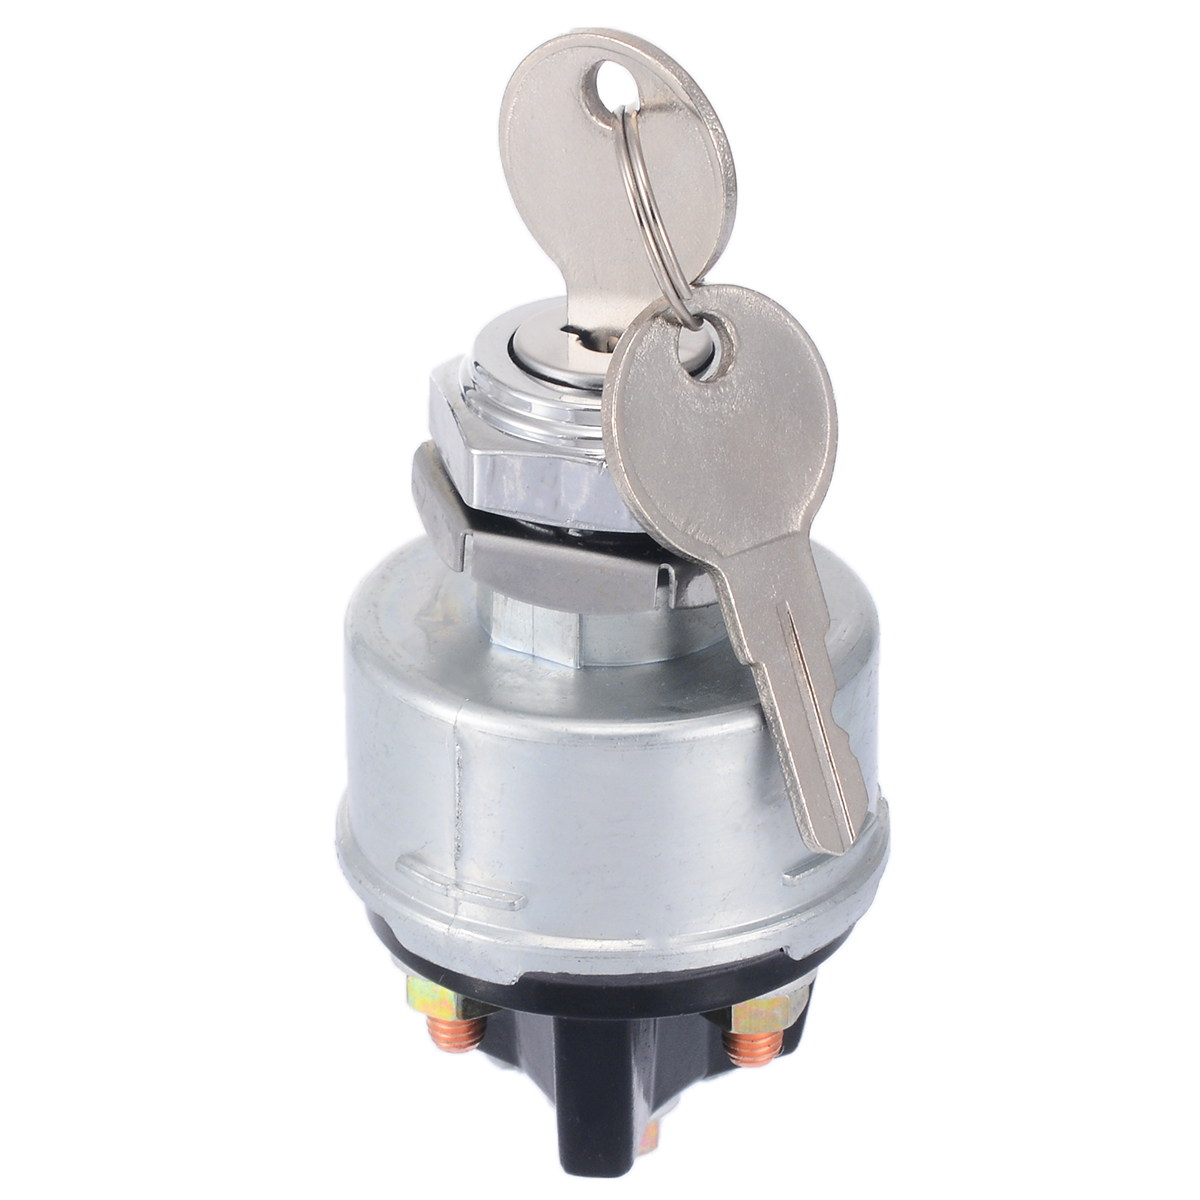 UNIVERSAL PETROL IGNITION STARTER SWITCH 4 POSITION TRACTOR